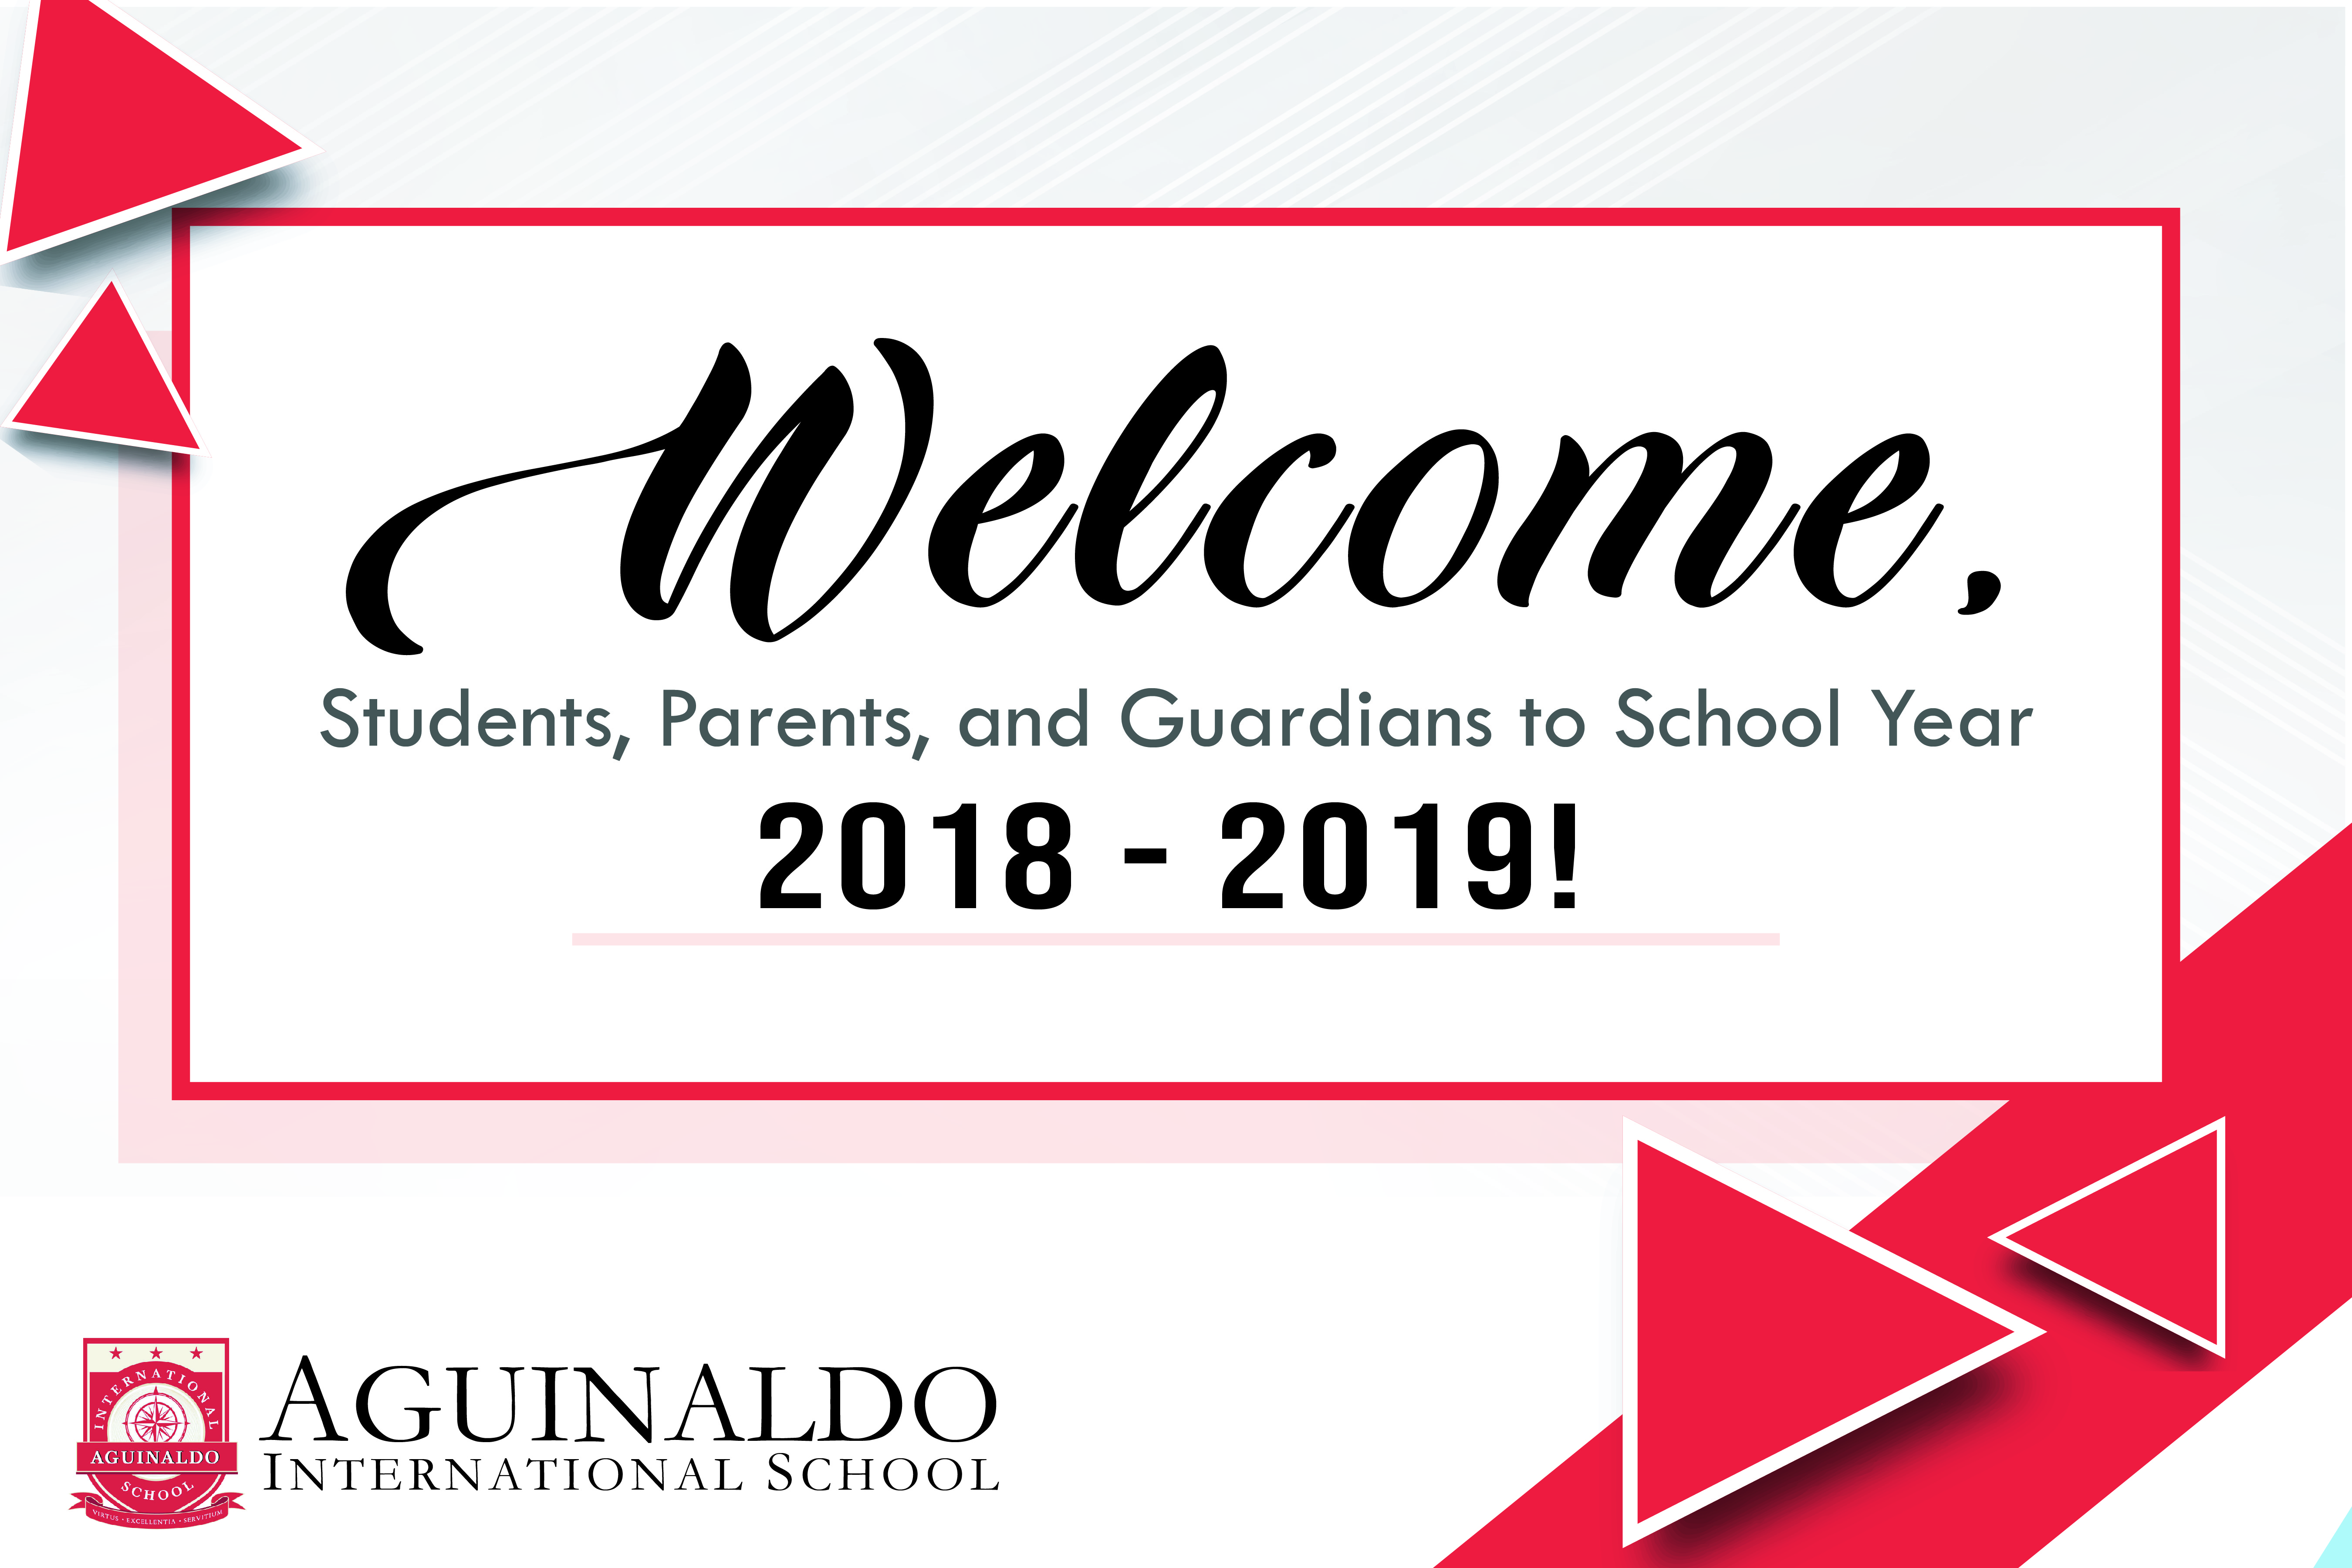 Welcome SY 2018-19